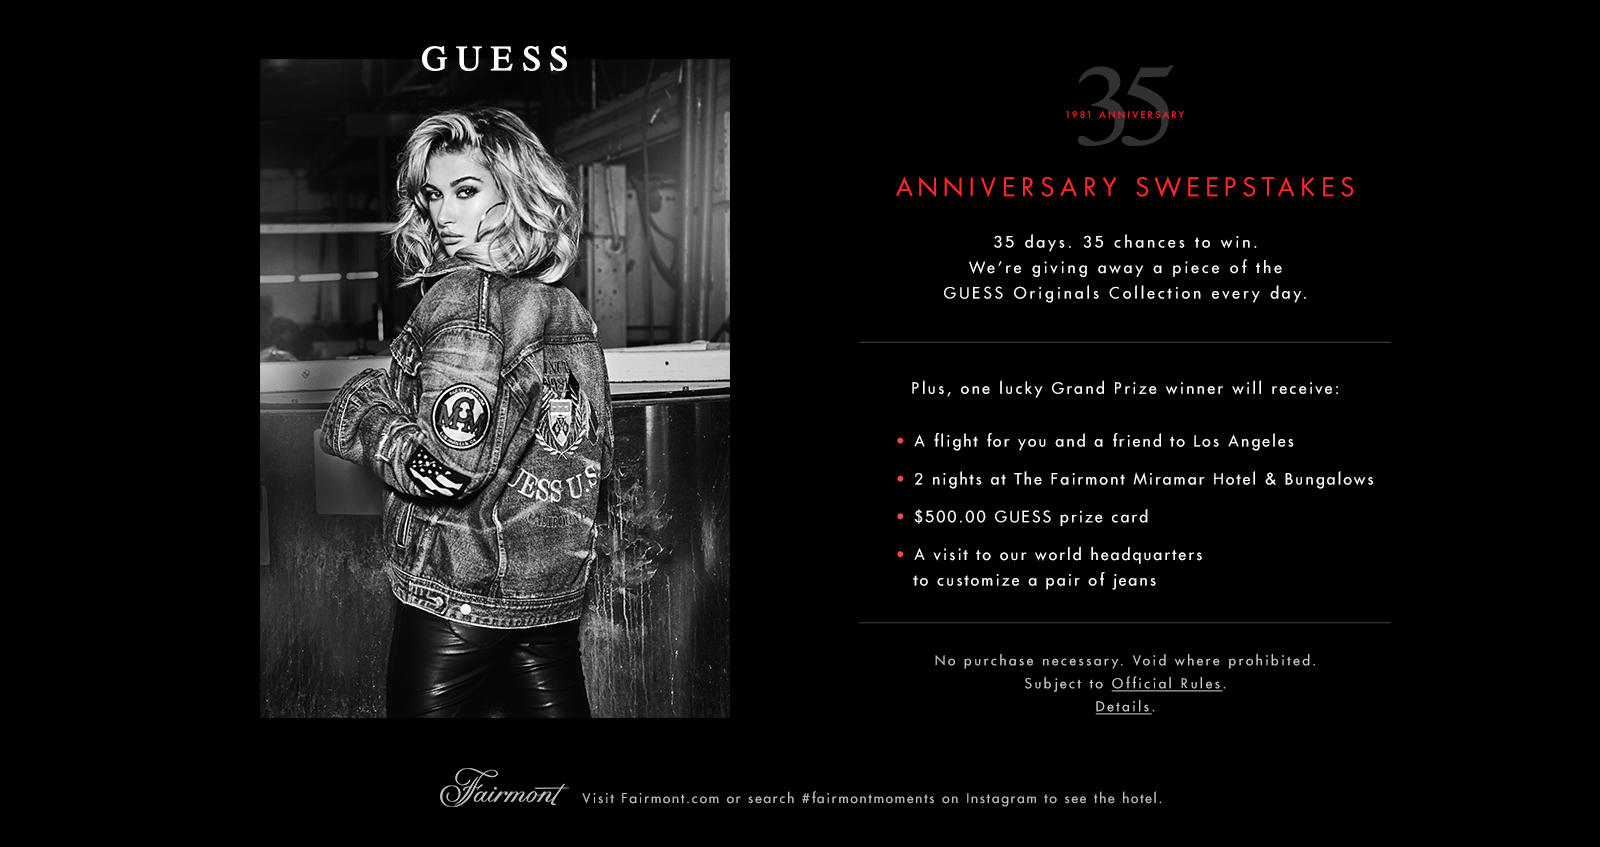 GUESS 35 Anniversary